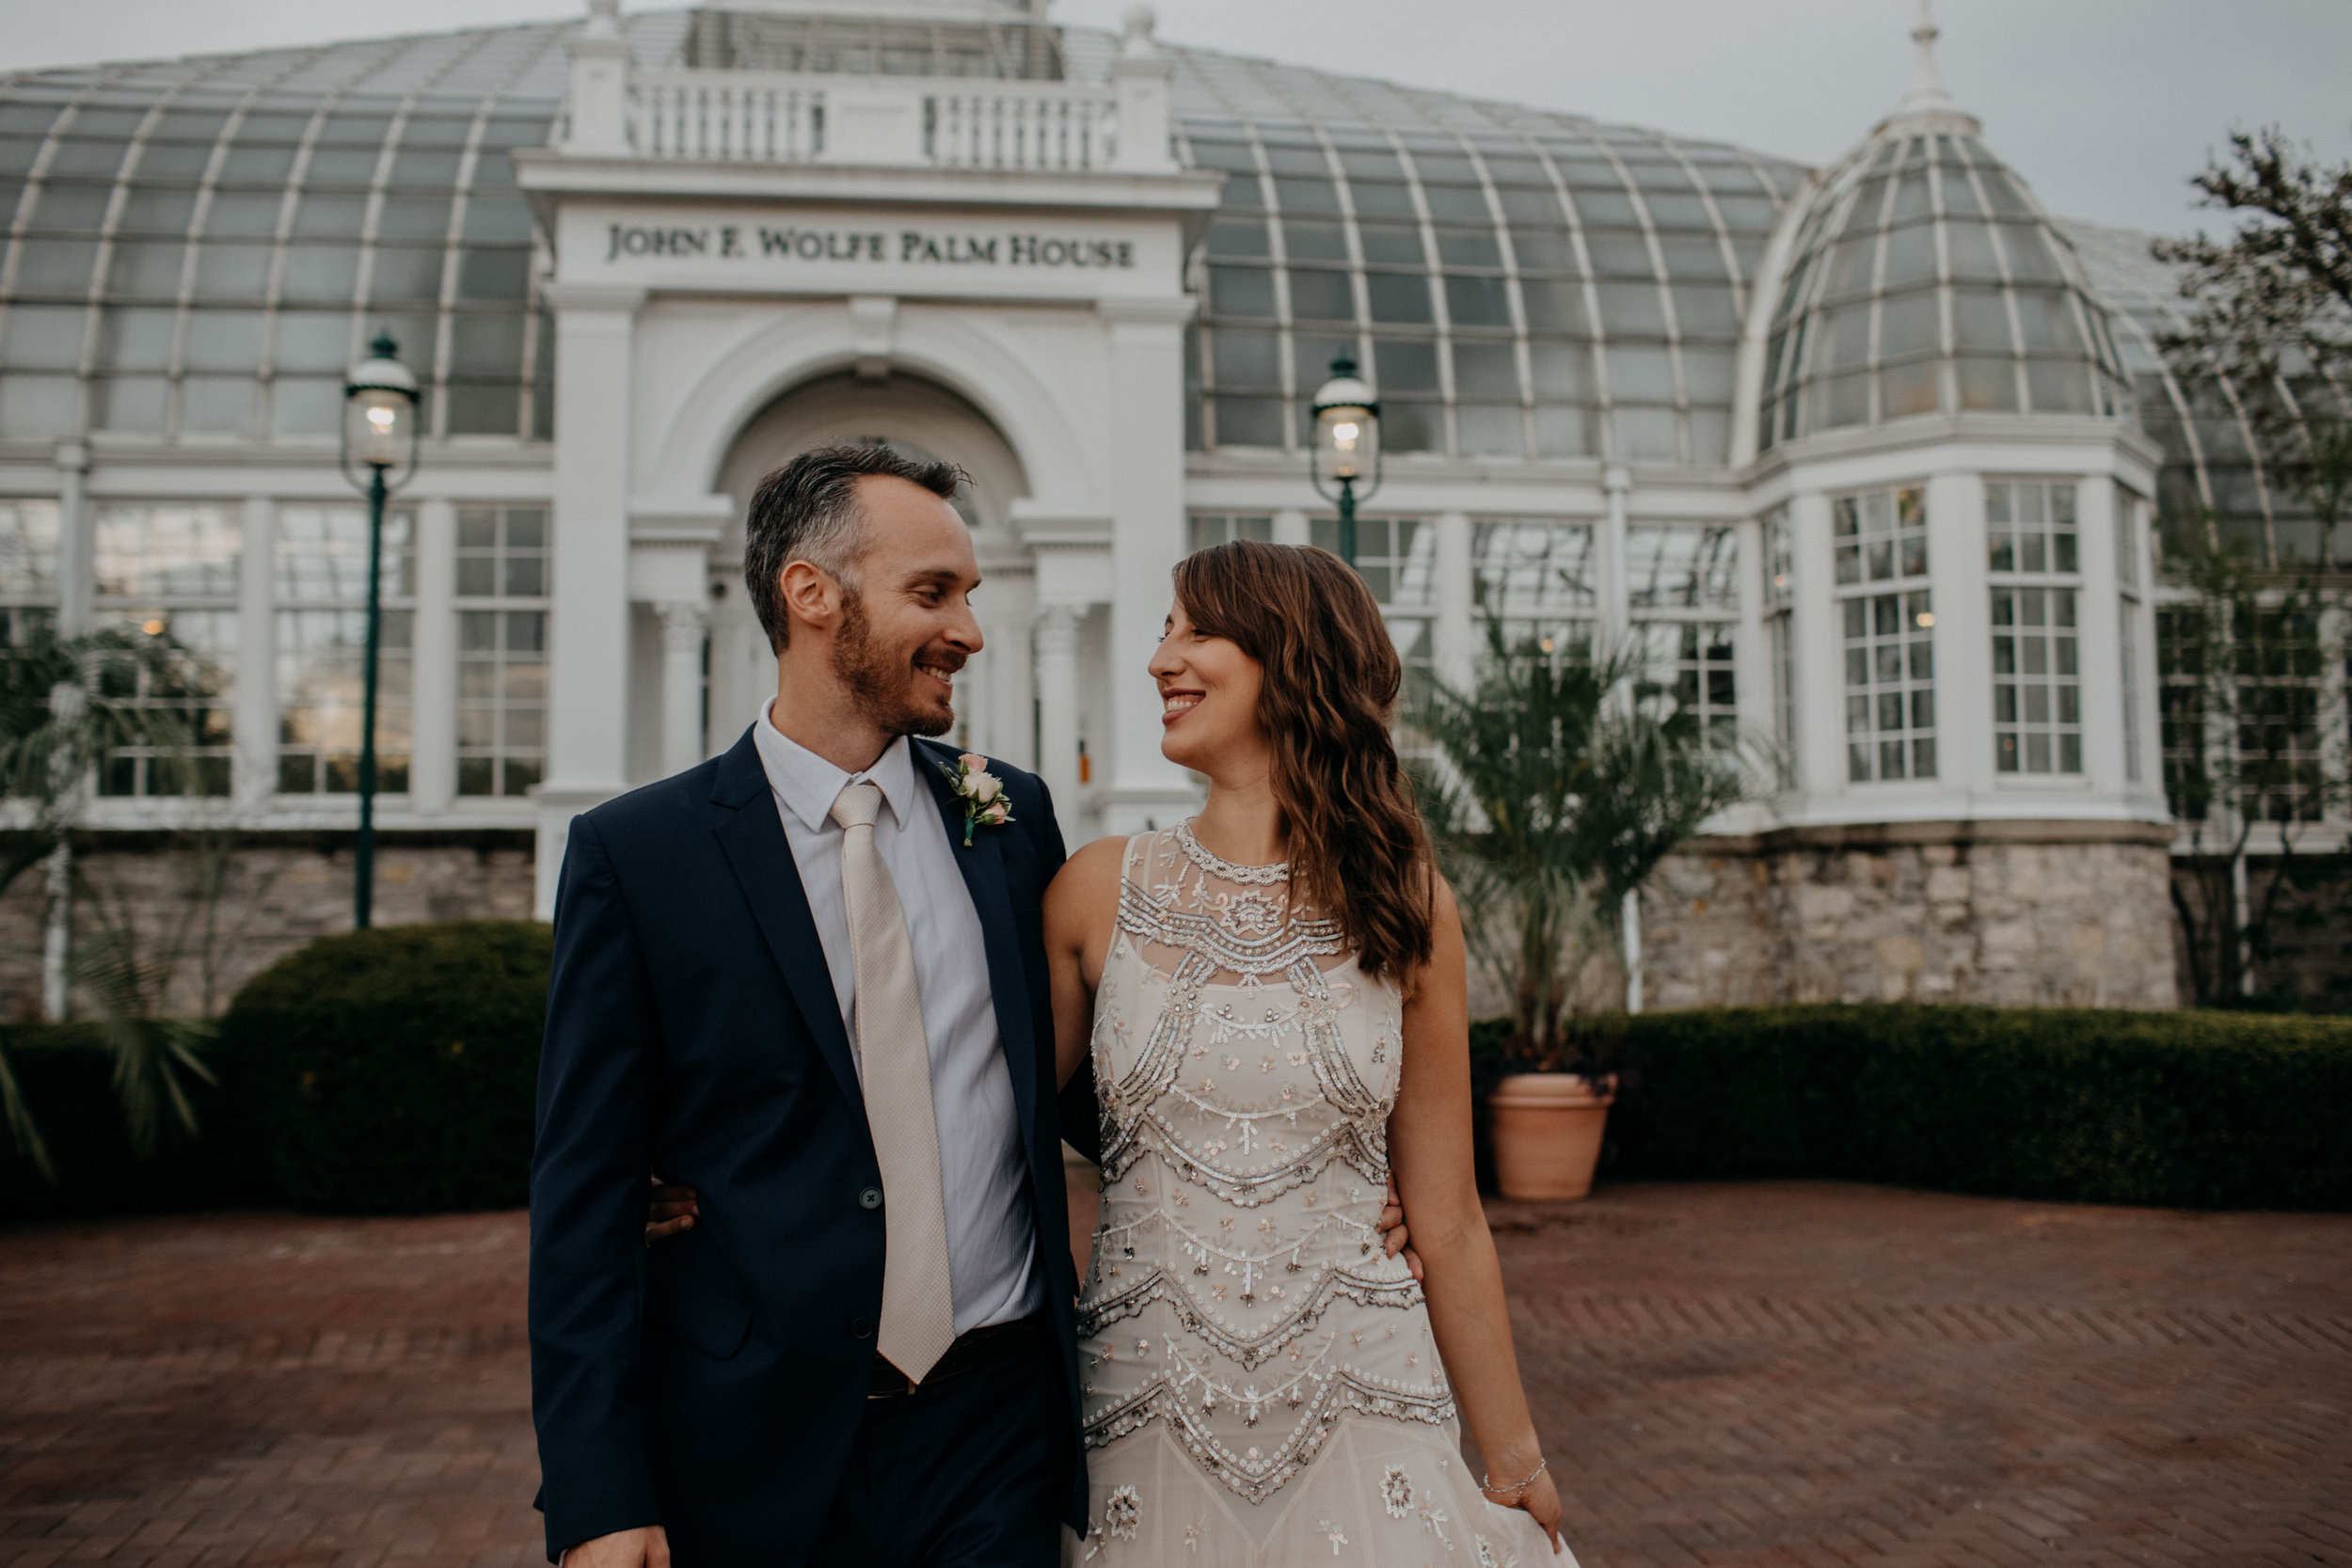 franklin park conservatory wedding columbus ohio wedding photographer grace e jones photography168.jpg